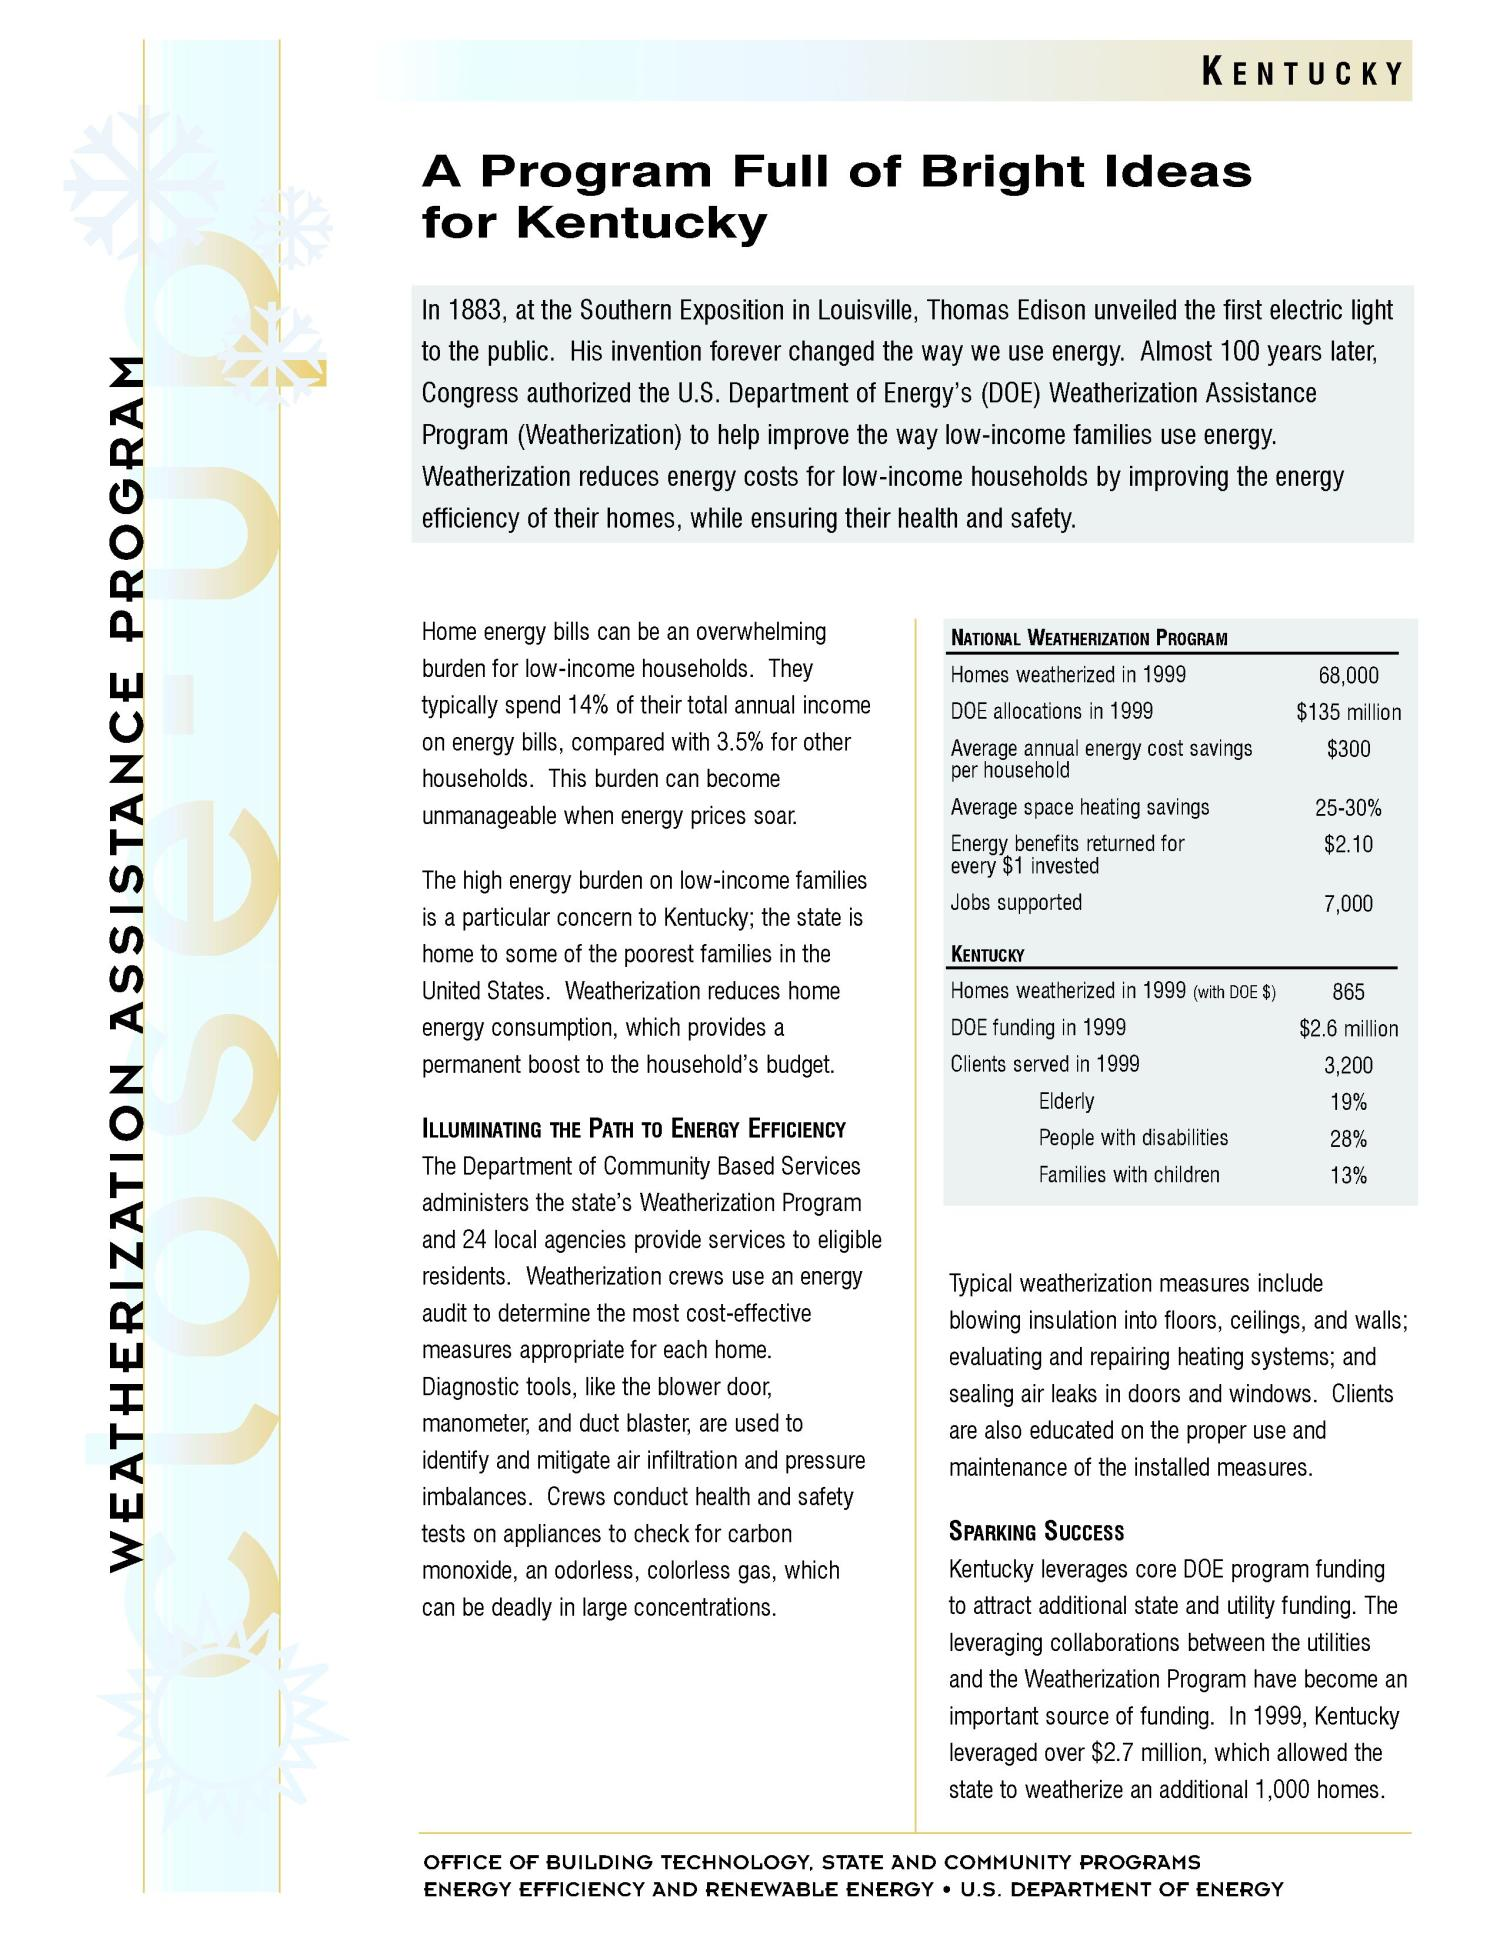 A Program Full of Bright Ideas for Kentucky: Weatherization Assistance Close-Up Fact Sheet                                                                                                      [Sequence #]: 1 of 2